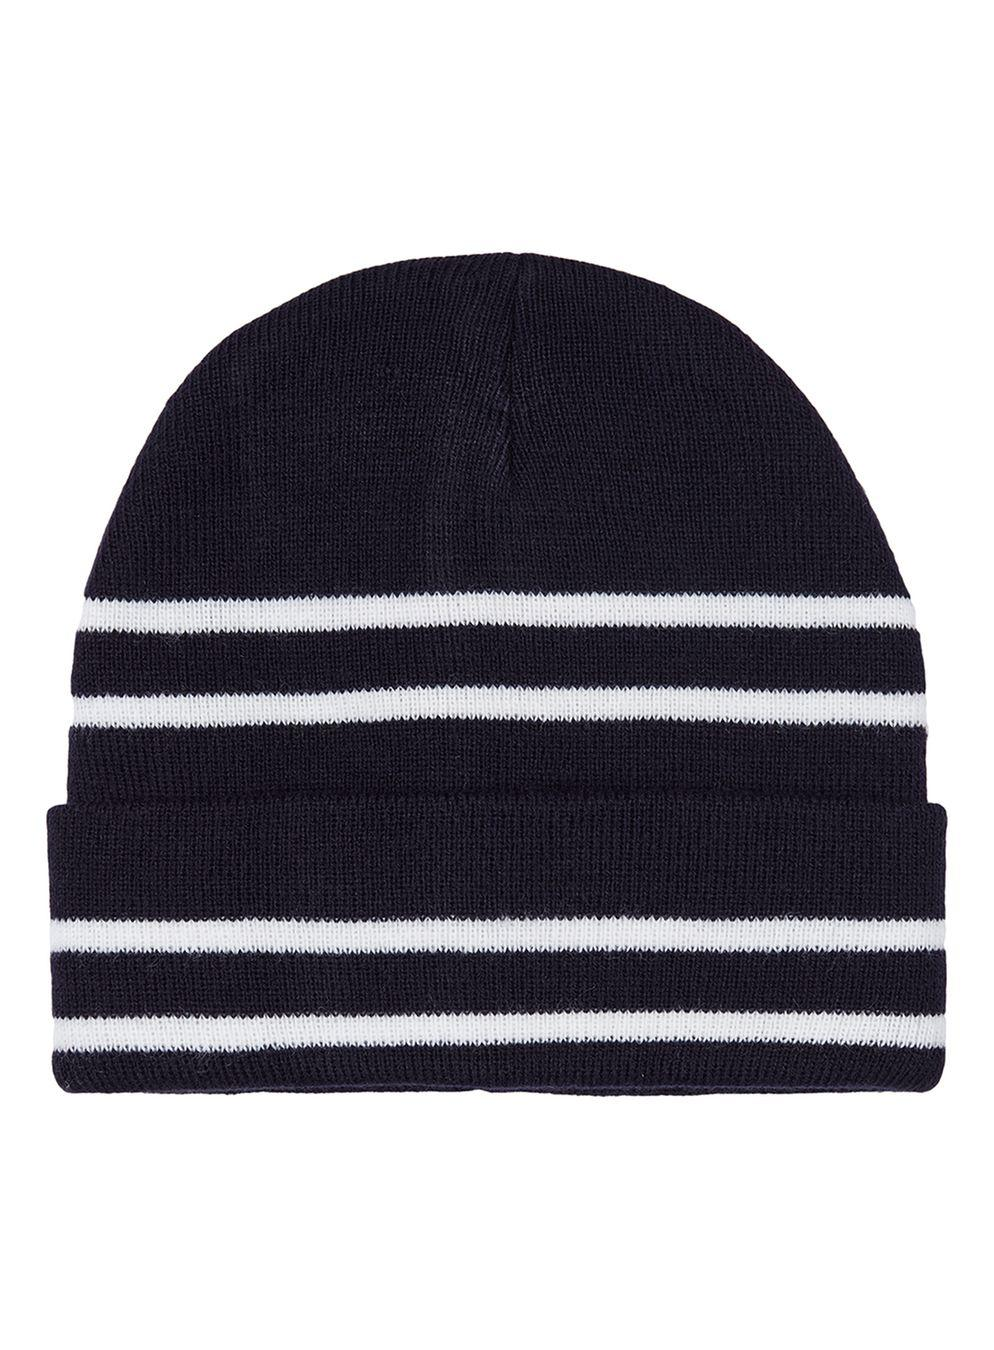 7371712def1 Topman Navy And White Stripe Beanie in Black for Men - Lyst